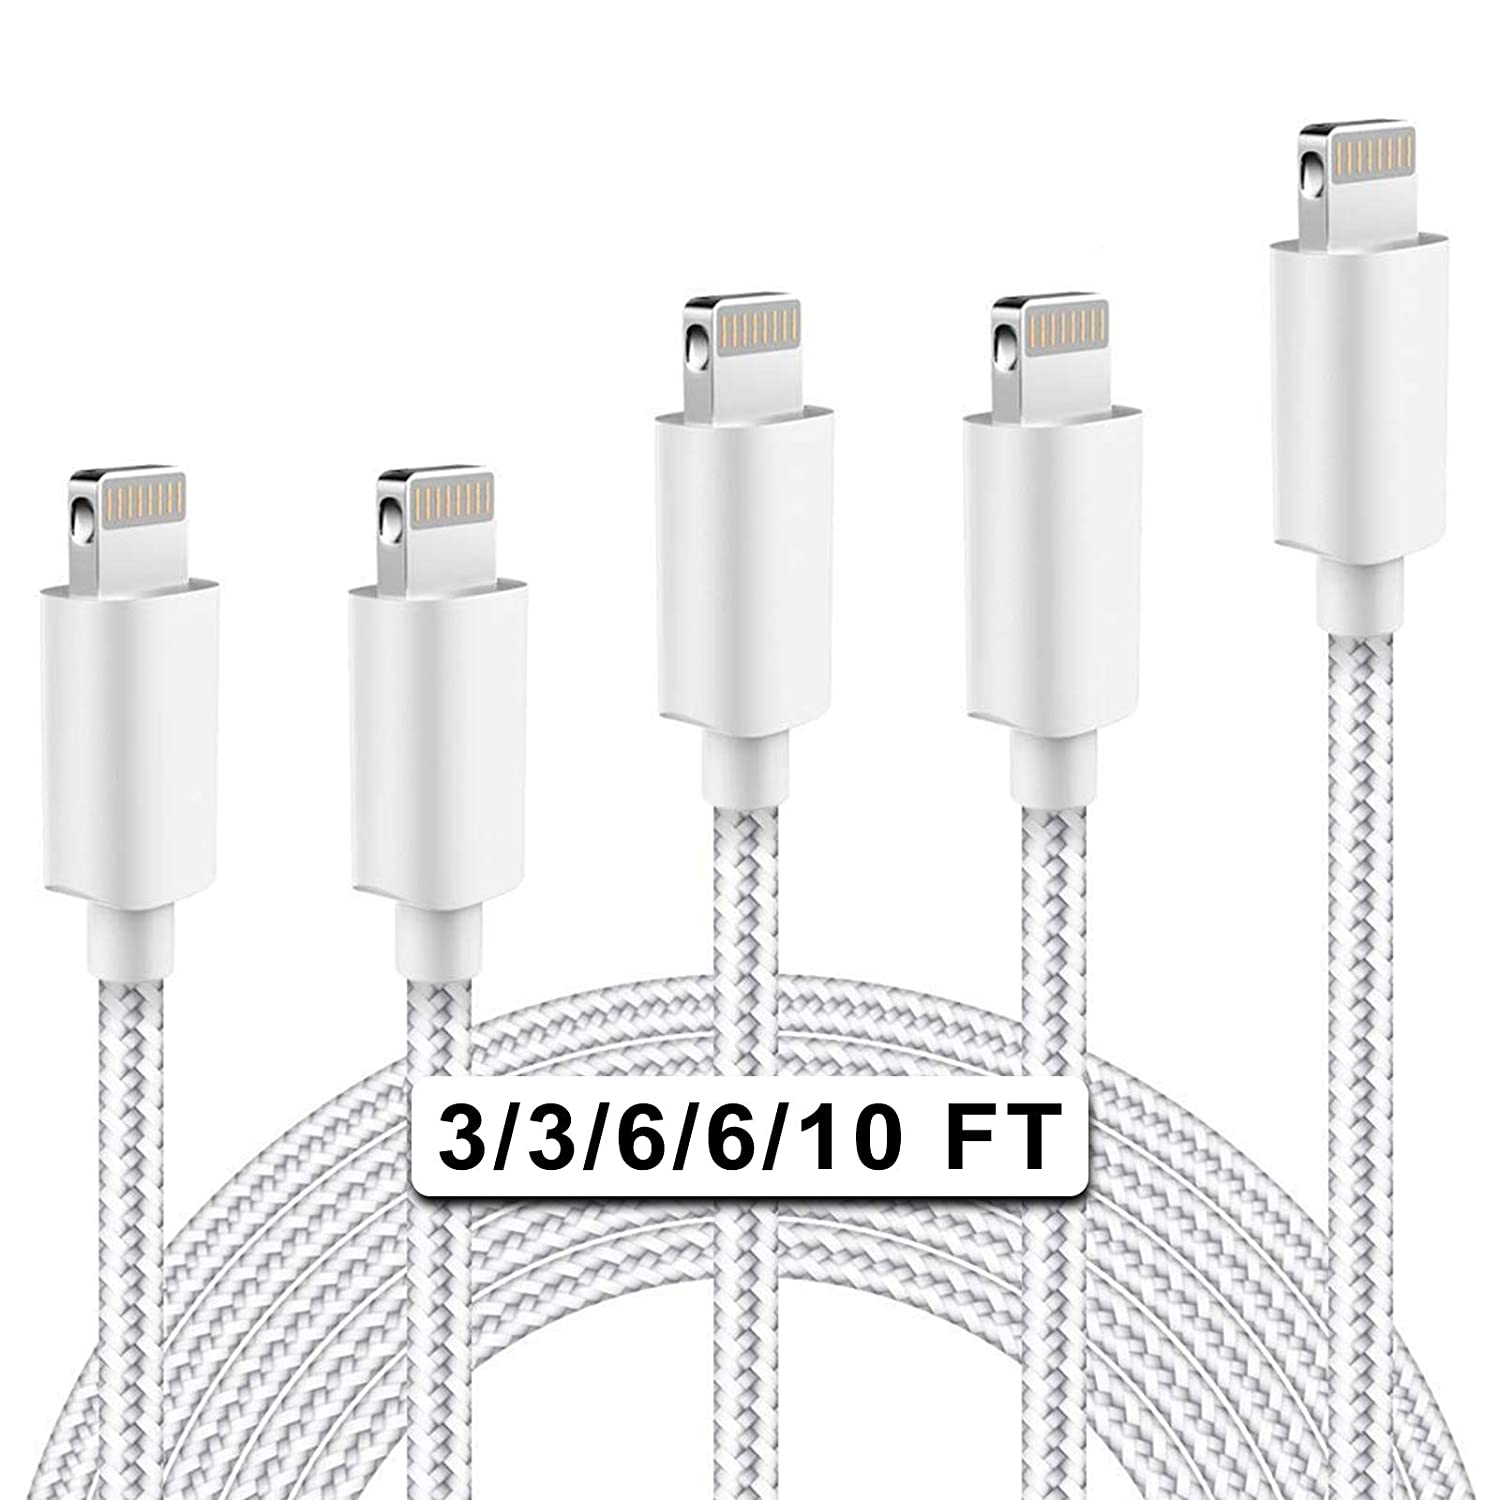 iPhone Charger MFi Certified Lightning Cable SANYEYE 5Pack(3/3/6/6/10ft) Nylon Braided Fast Charging & Sync Compatible iPhone 11/ Pro/Max/X/XS/XR/XS Max/ 8/ Plus/7/7 Plus/6/6S/6 Plus